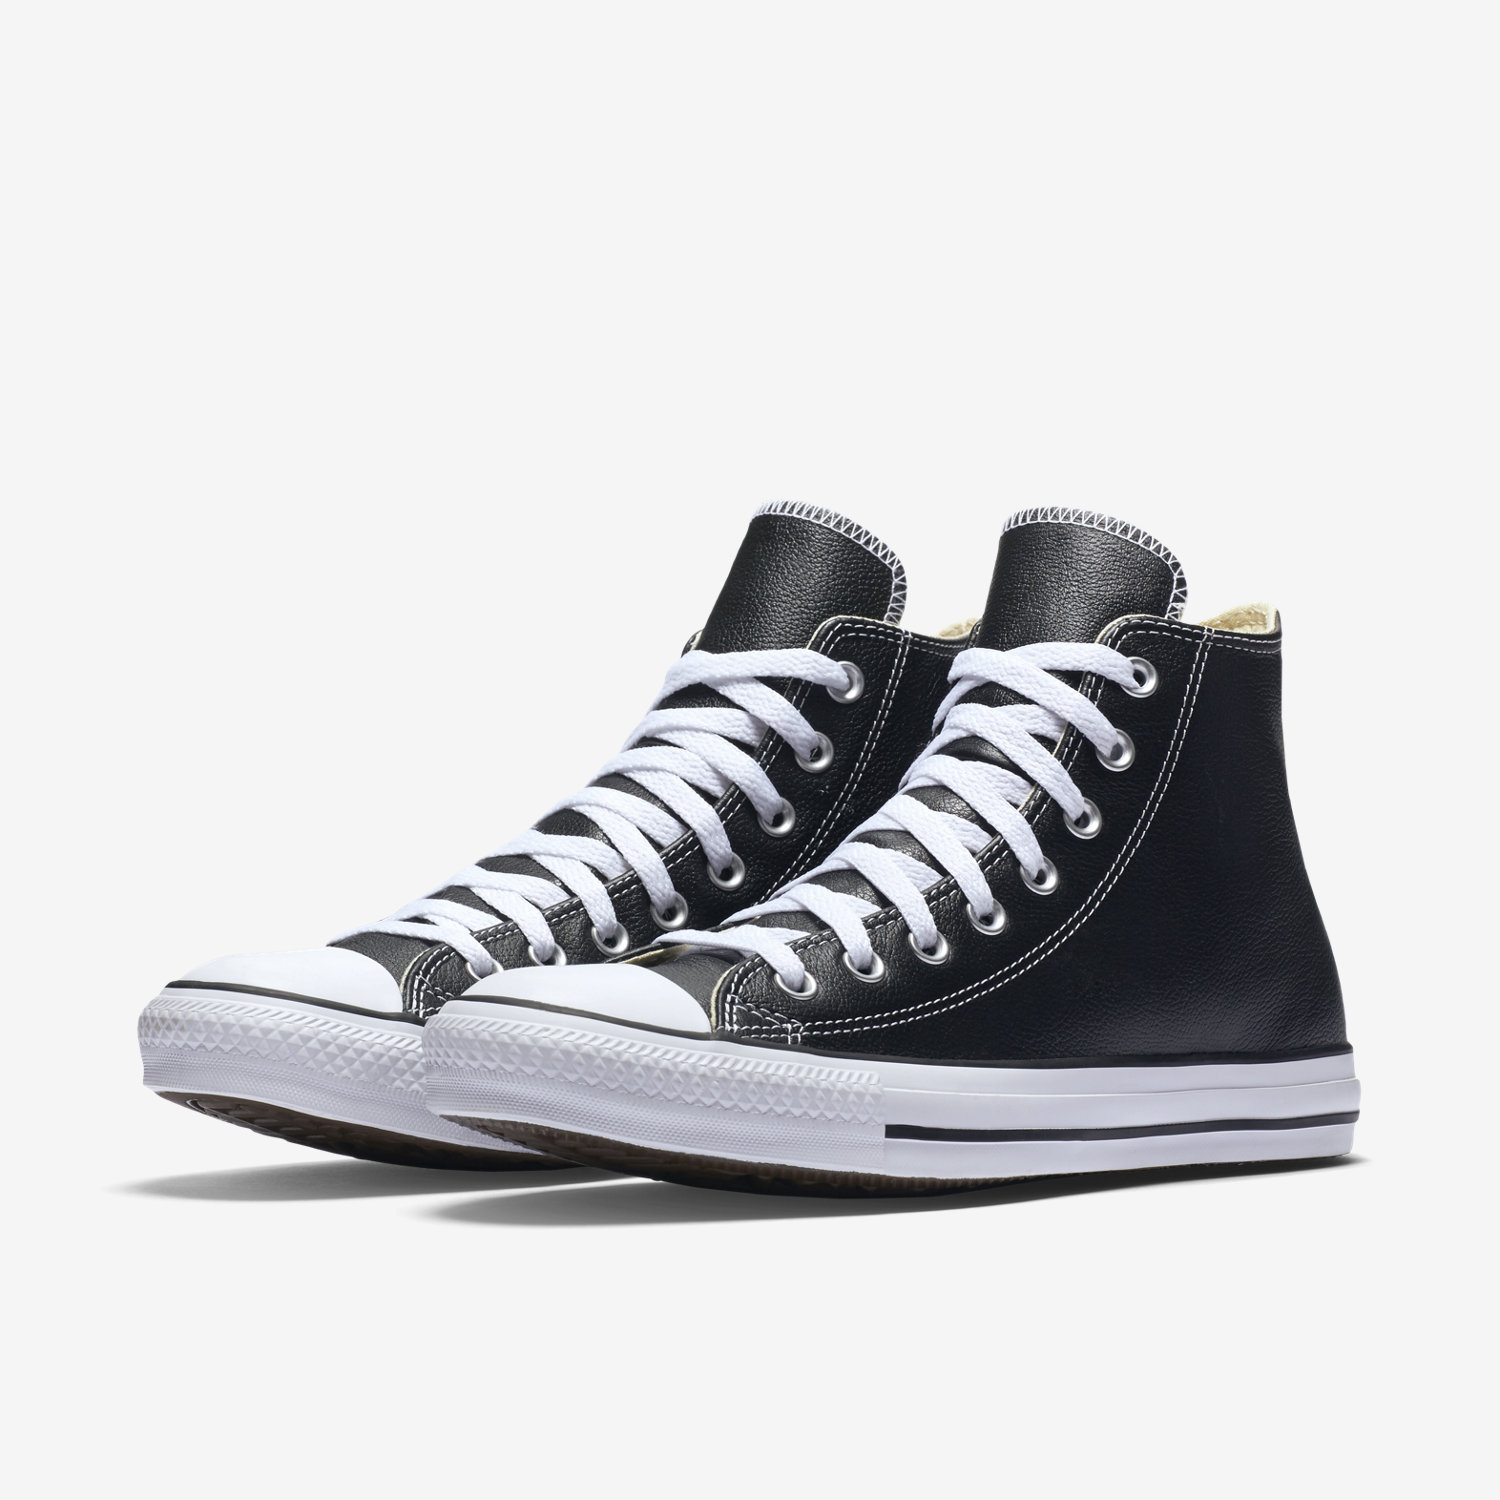 black leather converse converse chuck taylor all star leather unisex high top shoe. nike.com PZXOCFY